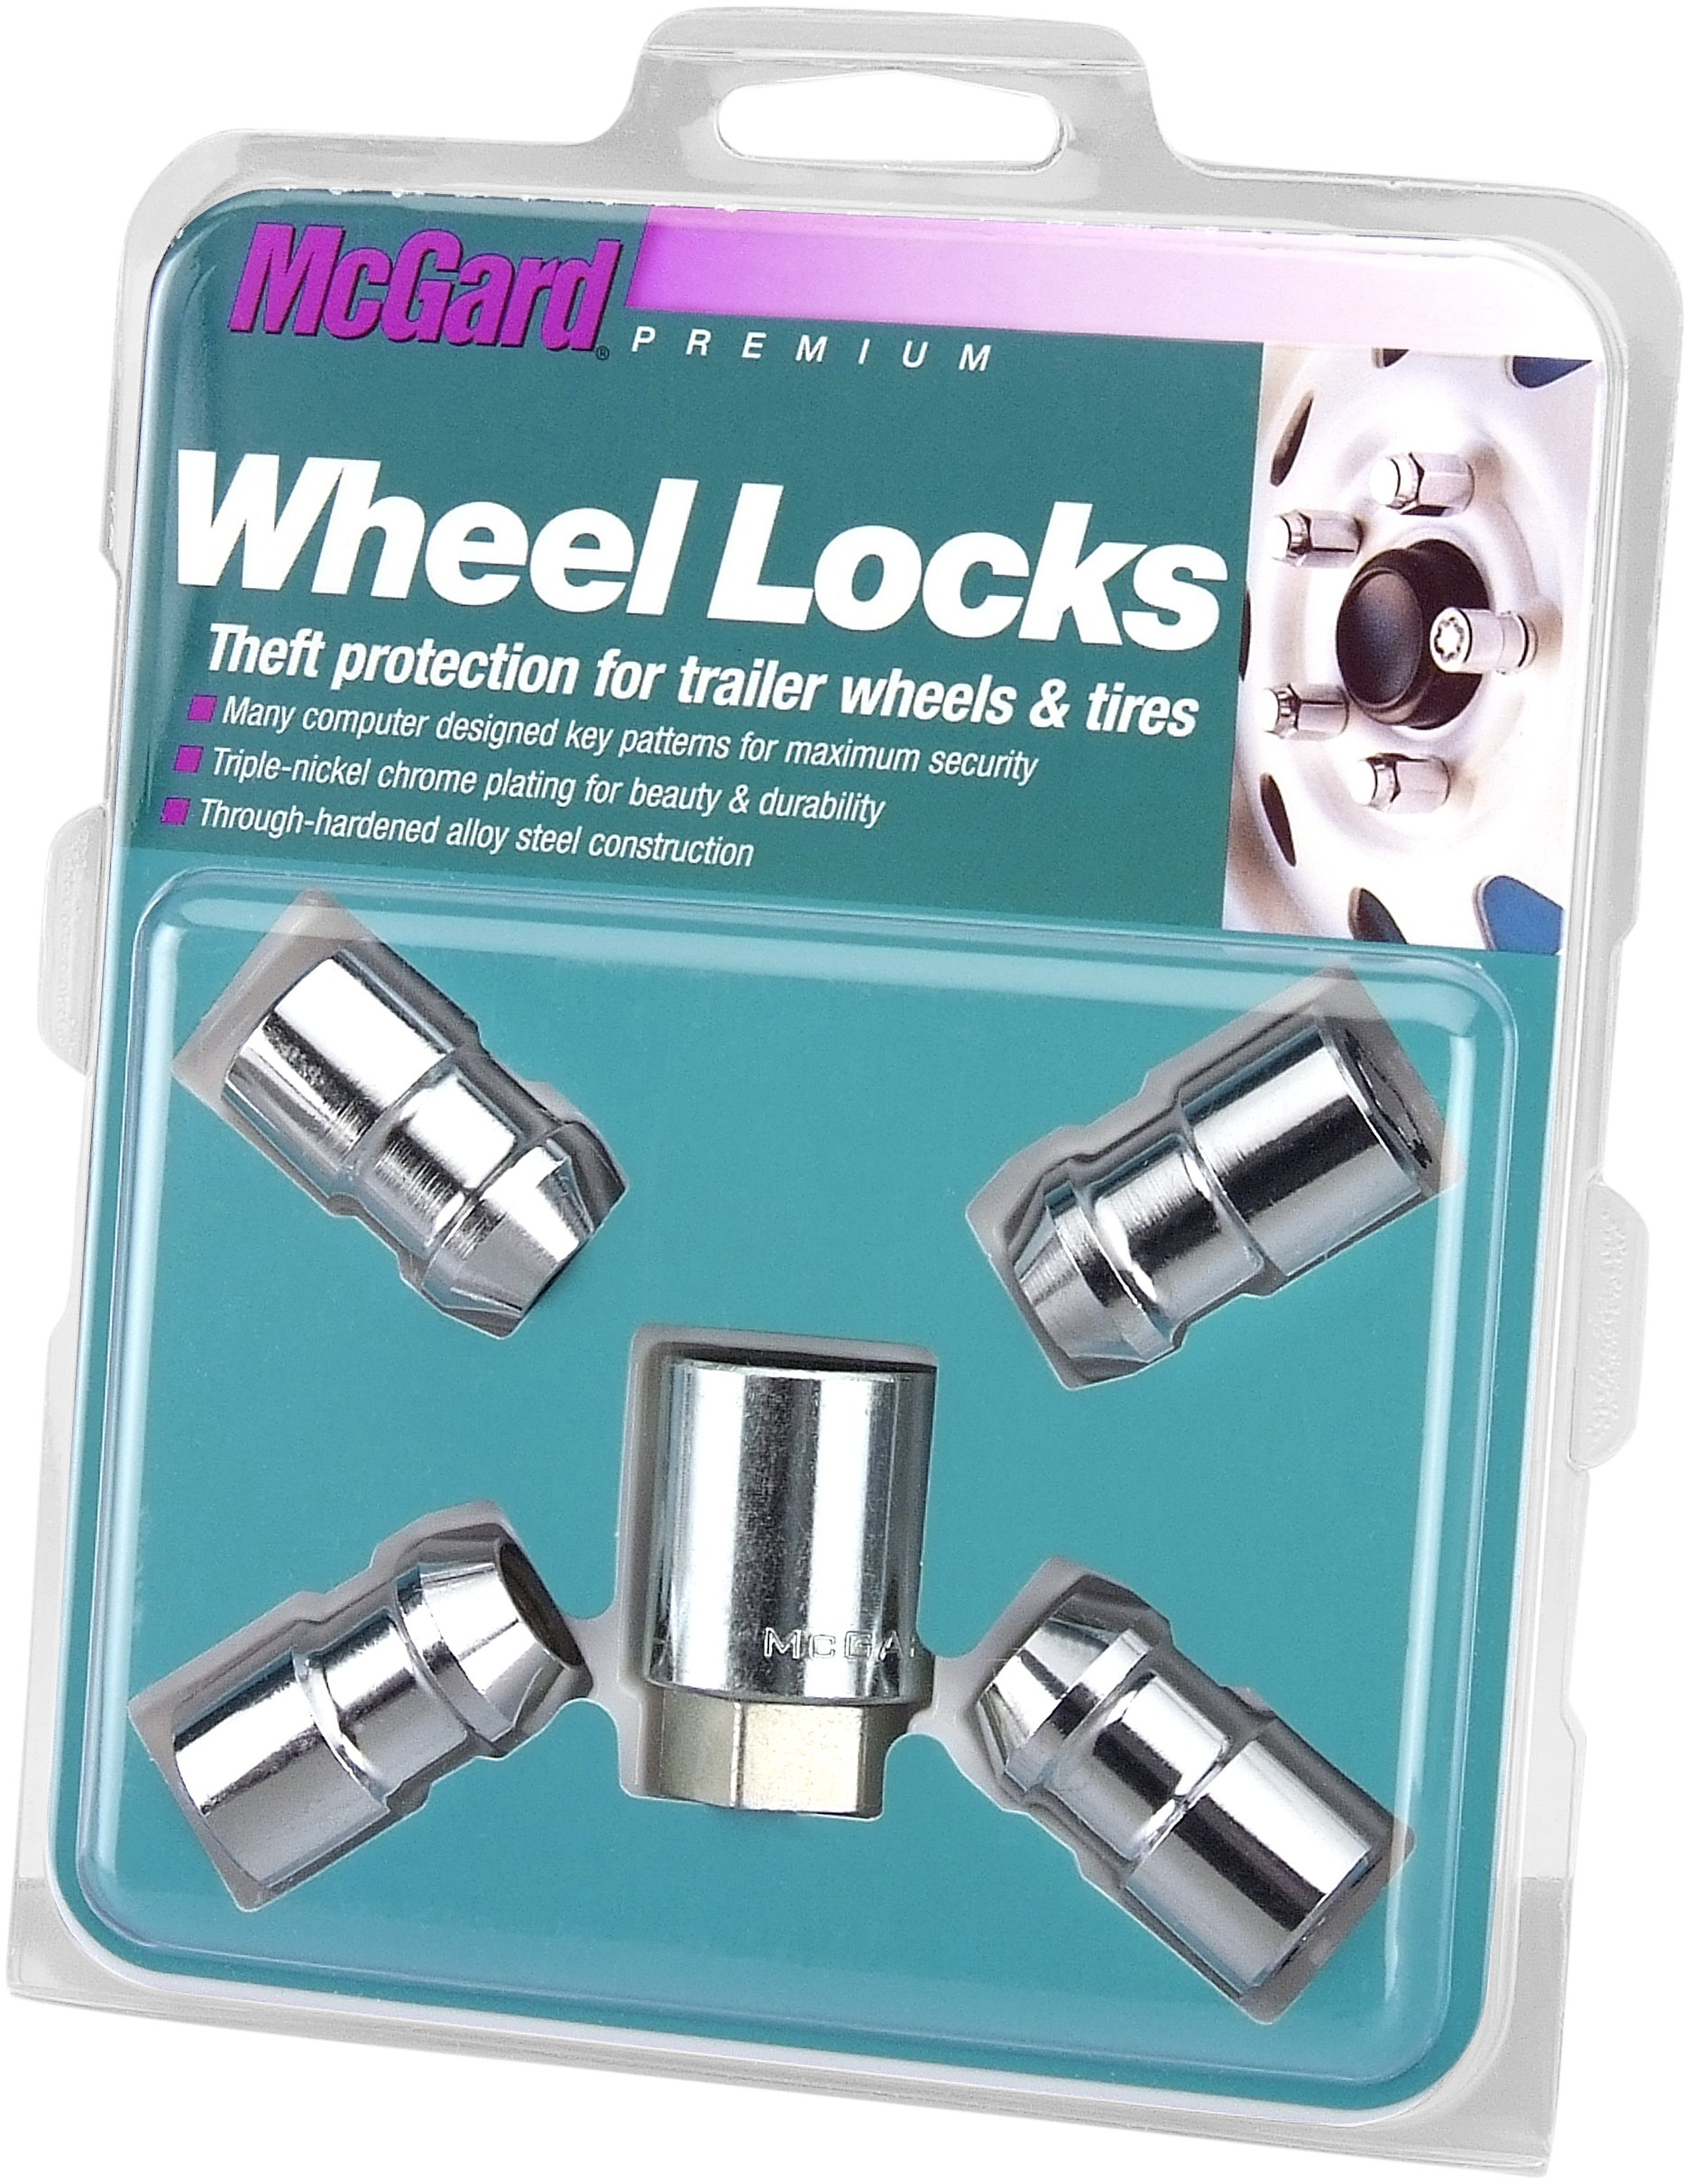 McGard 74041 Chrome Cone Seat Trailer Wheel Locks (1/2-20 Thread Size) - Set of 4